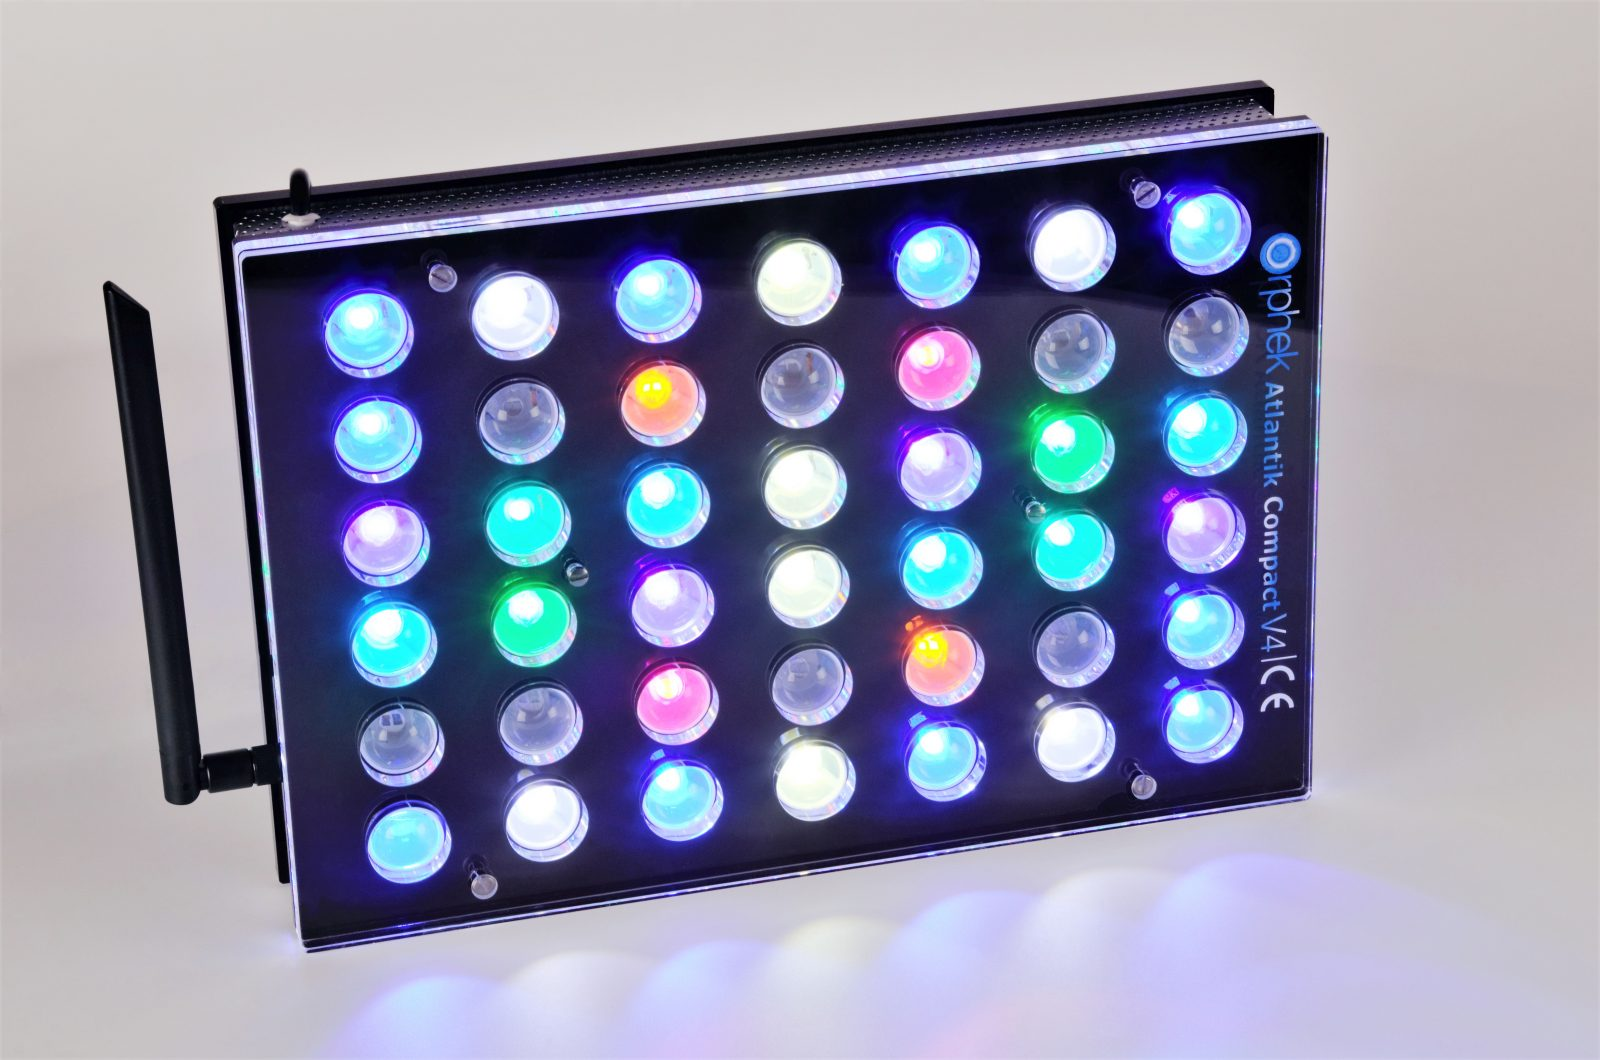 Orphek-Aquarium-LED-Lighting-Atlantik-کمپیکٹ- V4-روشنی -لینلینل 1 + 2 + 4